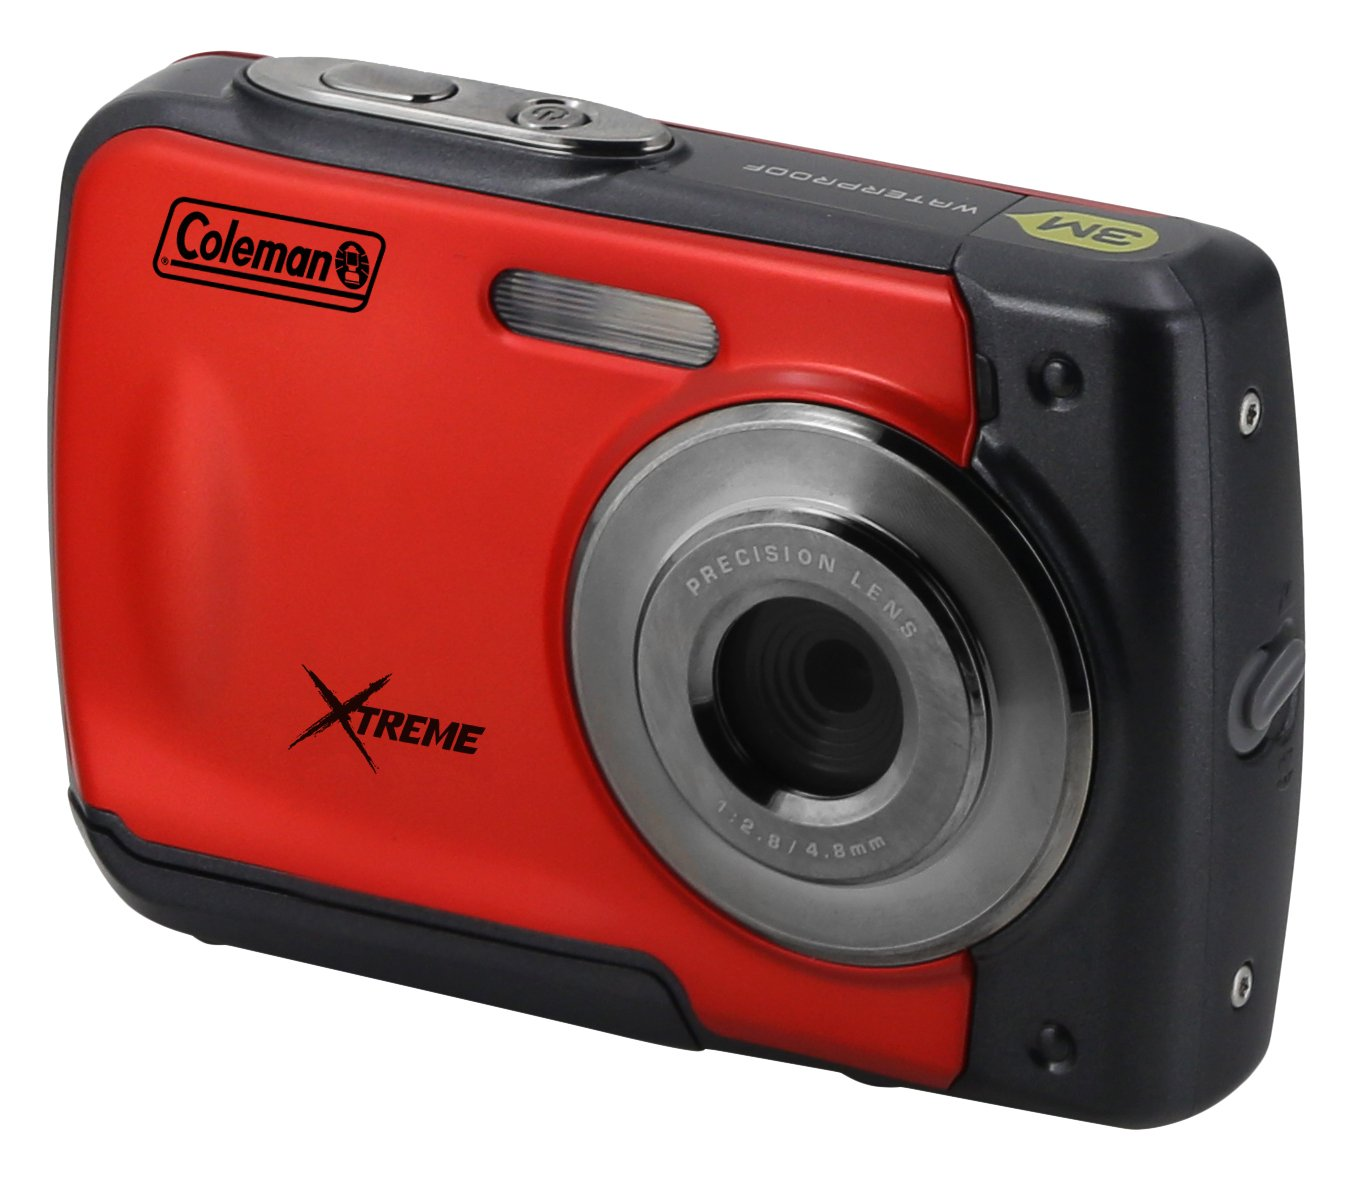 """Coleman Xtreme 18.0 MP HD Underwater Digital & Video Camera (Waterproof to 10 ft.), 2.5"""", Red (C20WP-R)"""